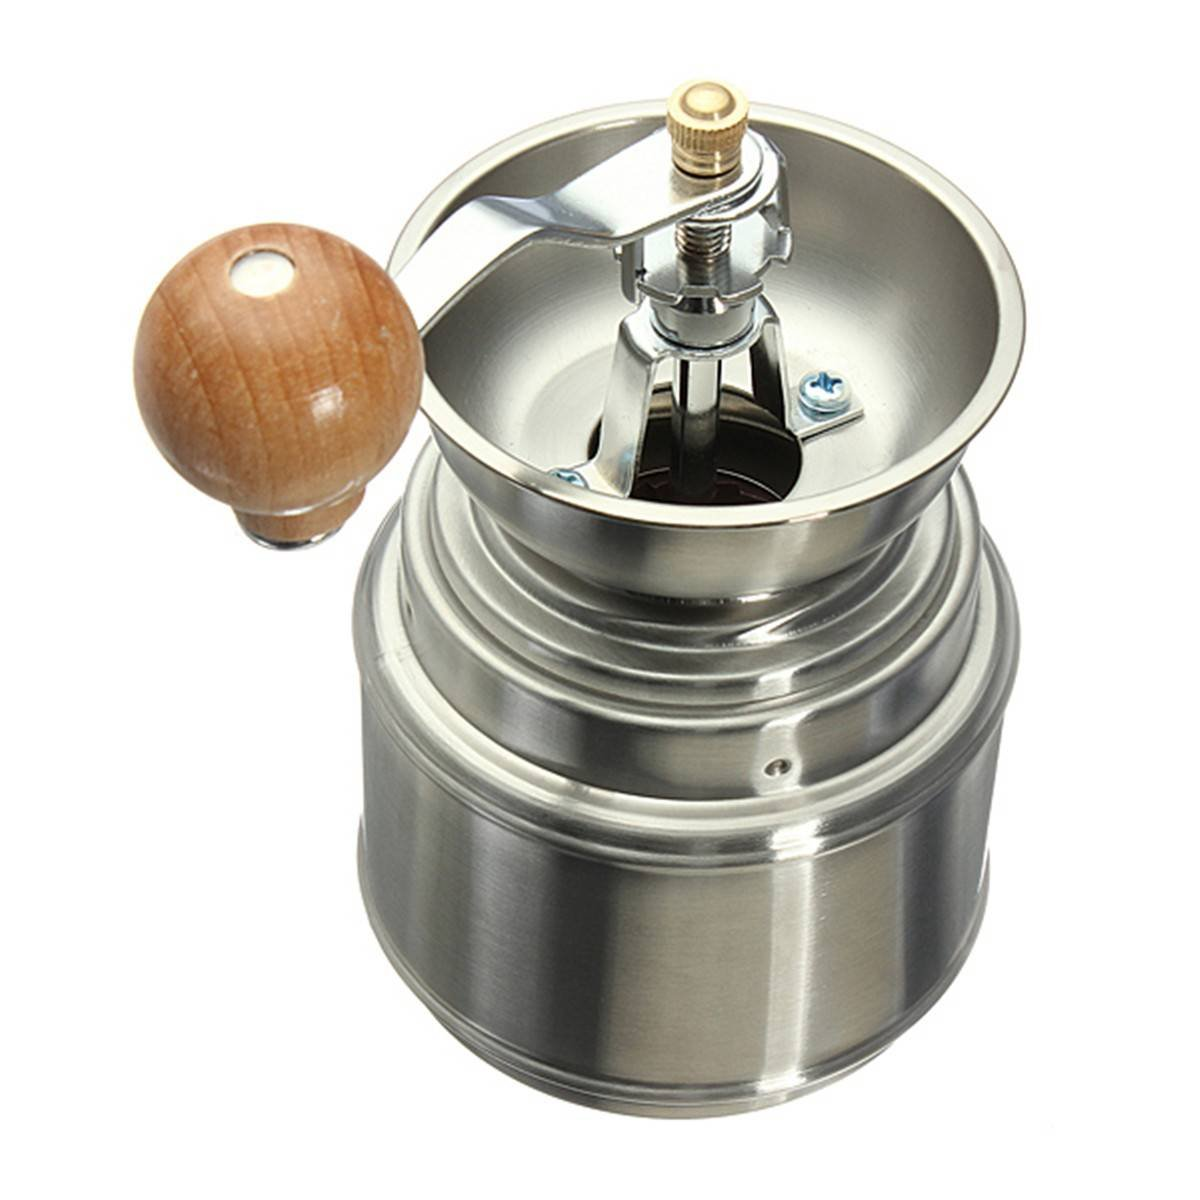 Portable Coffee bean grinder Stainless Steel Manual Spice Bean Coffee Grinder Burr Grinder Mill with Ceramic Core hand coffee grinder 160ml portable manual handcrank coffee bean spice mill kitchen tool coffee stainless steel abs glass